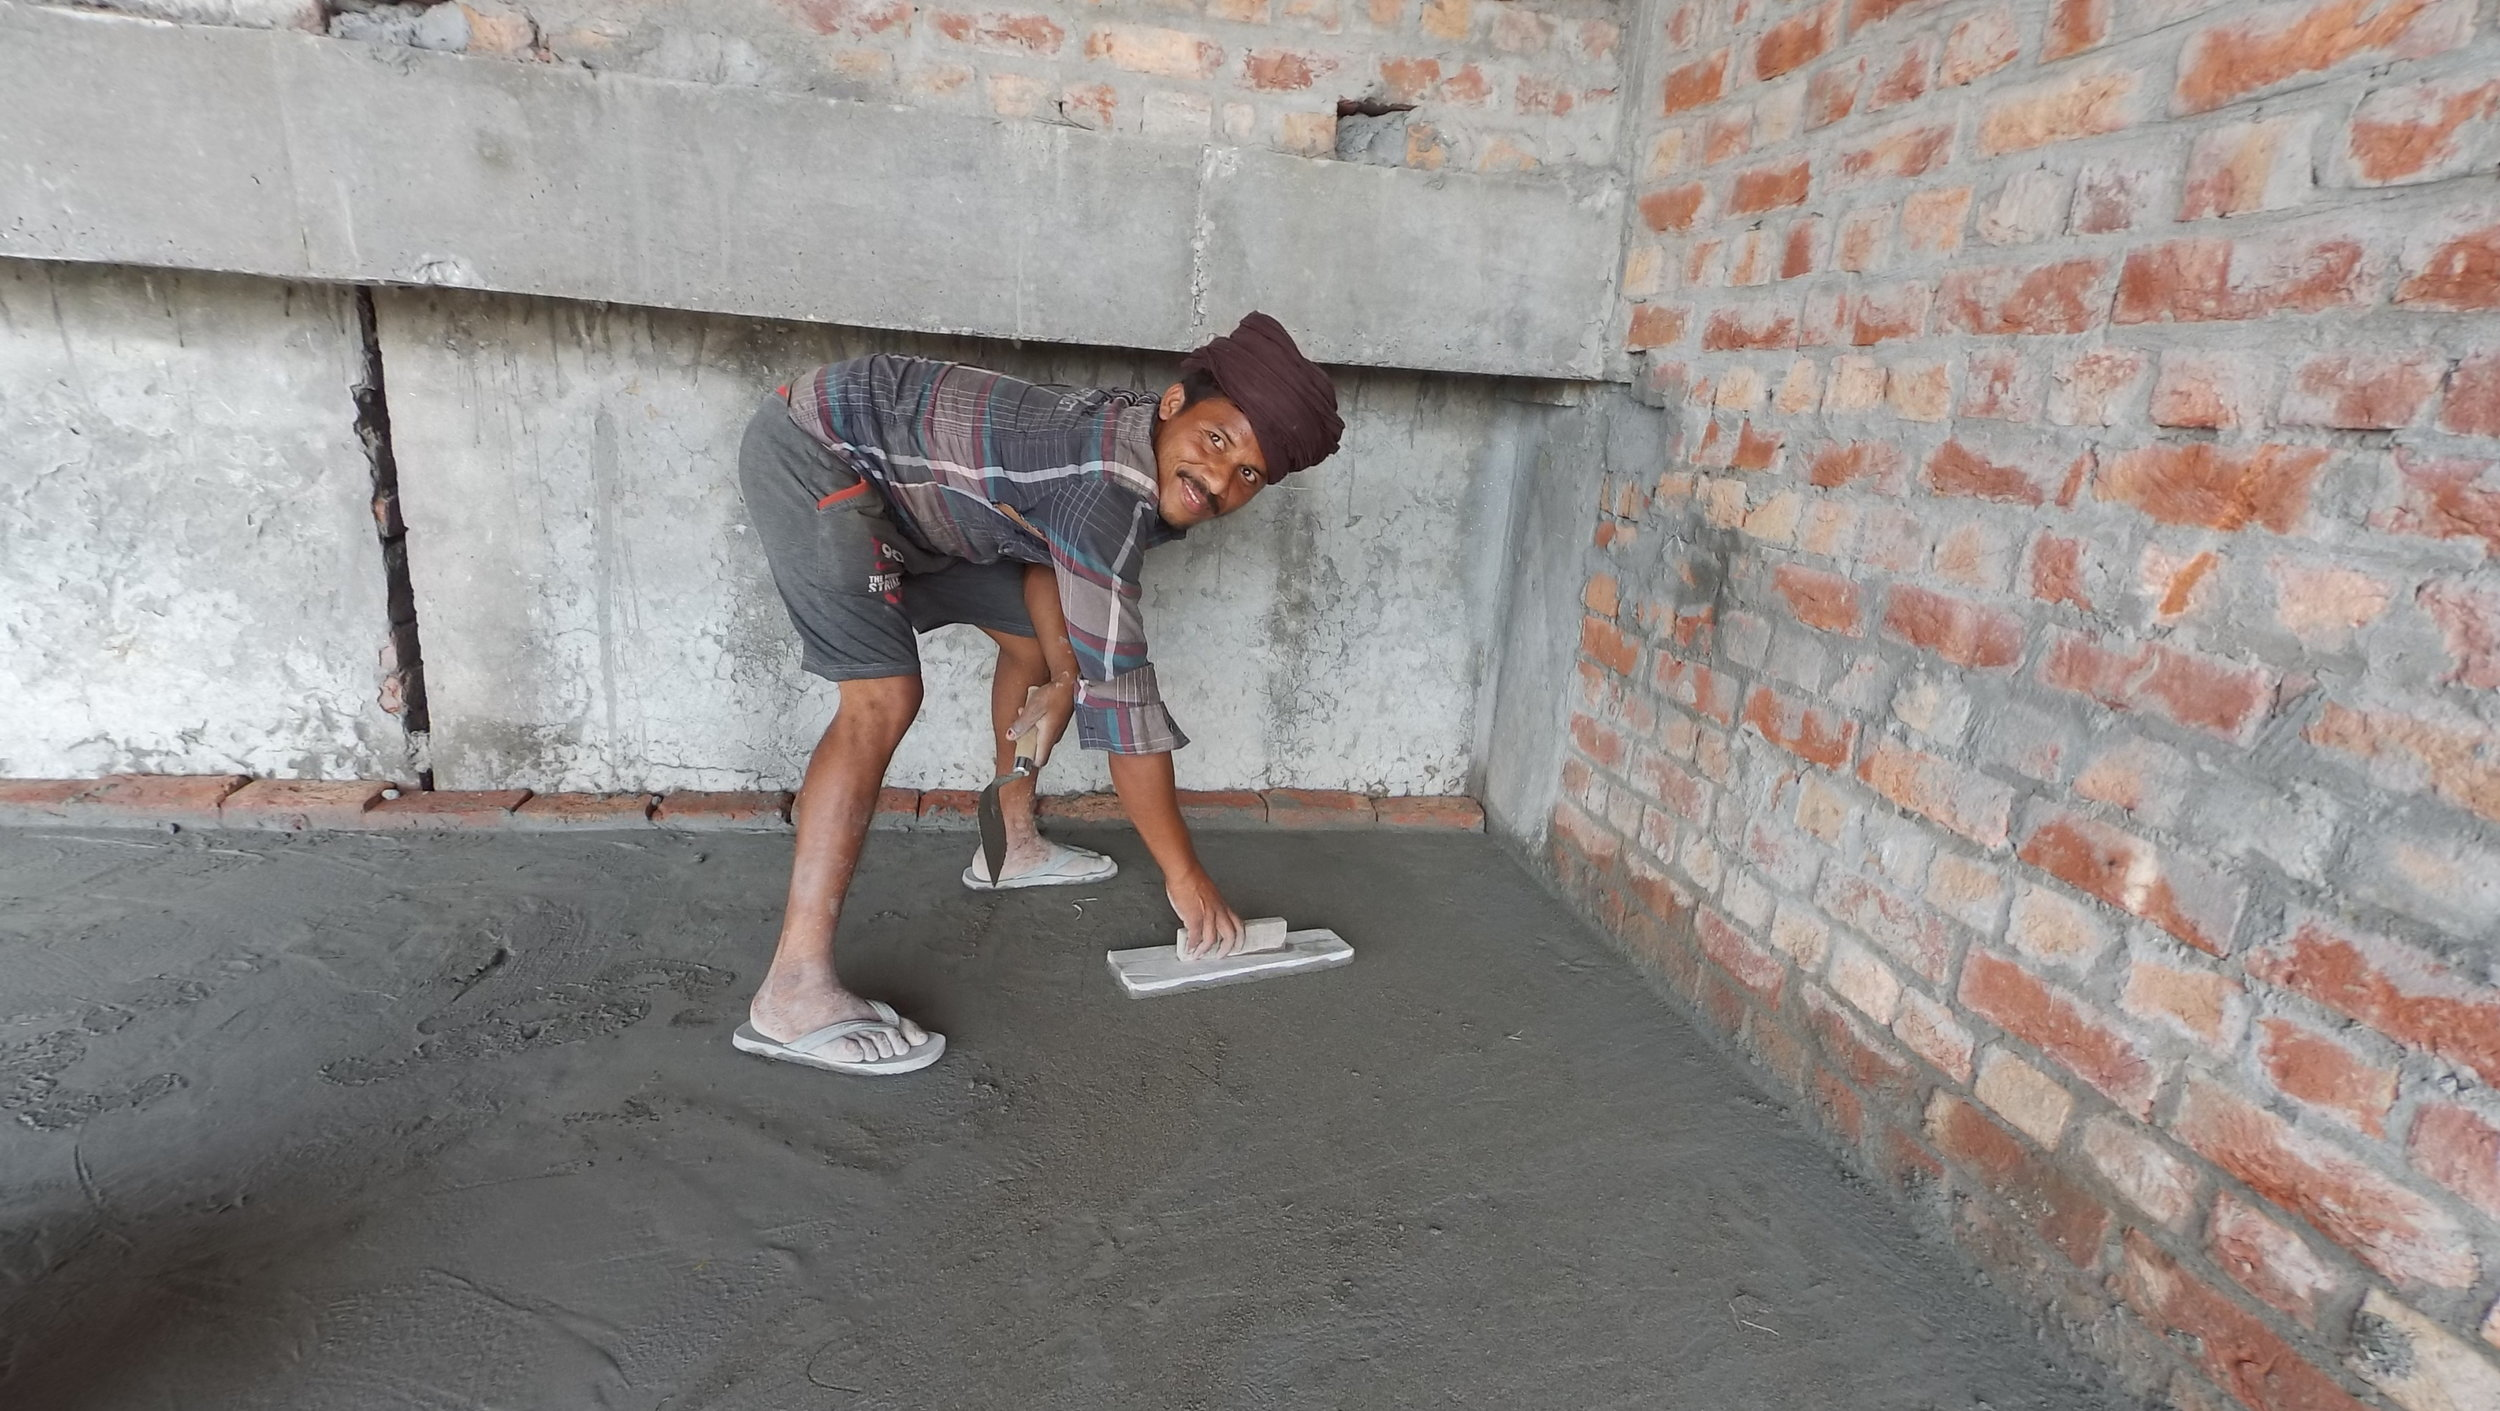 Labourer polishing the floor at gurdwara before his departure, 1 June 2016